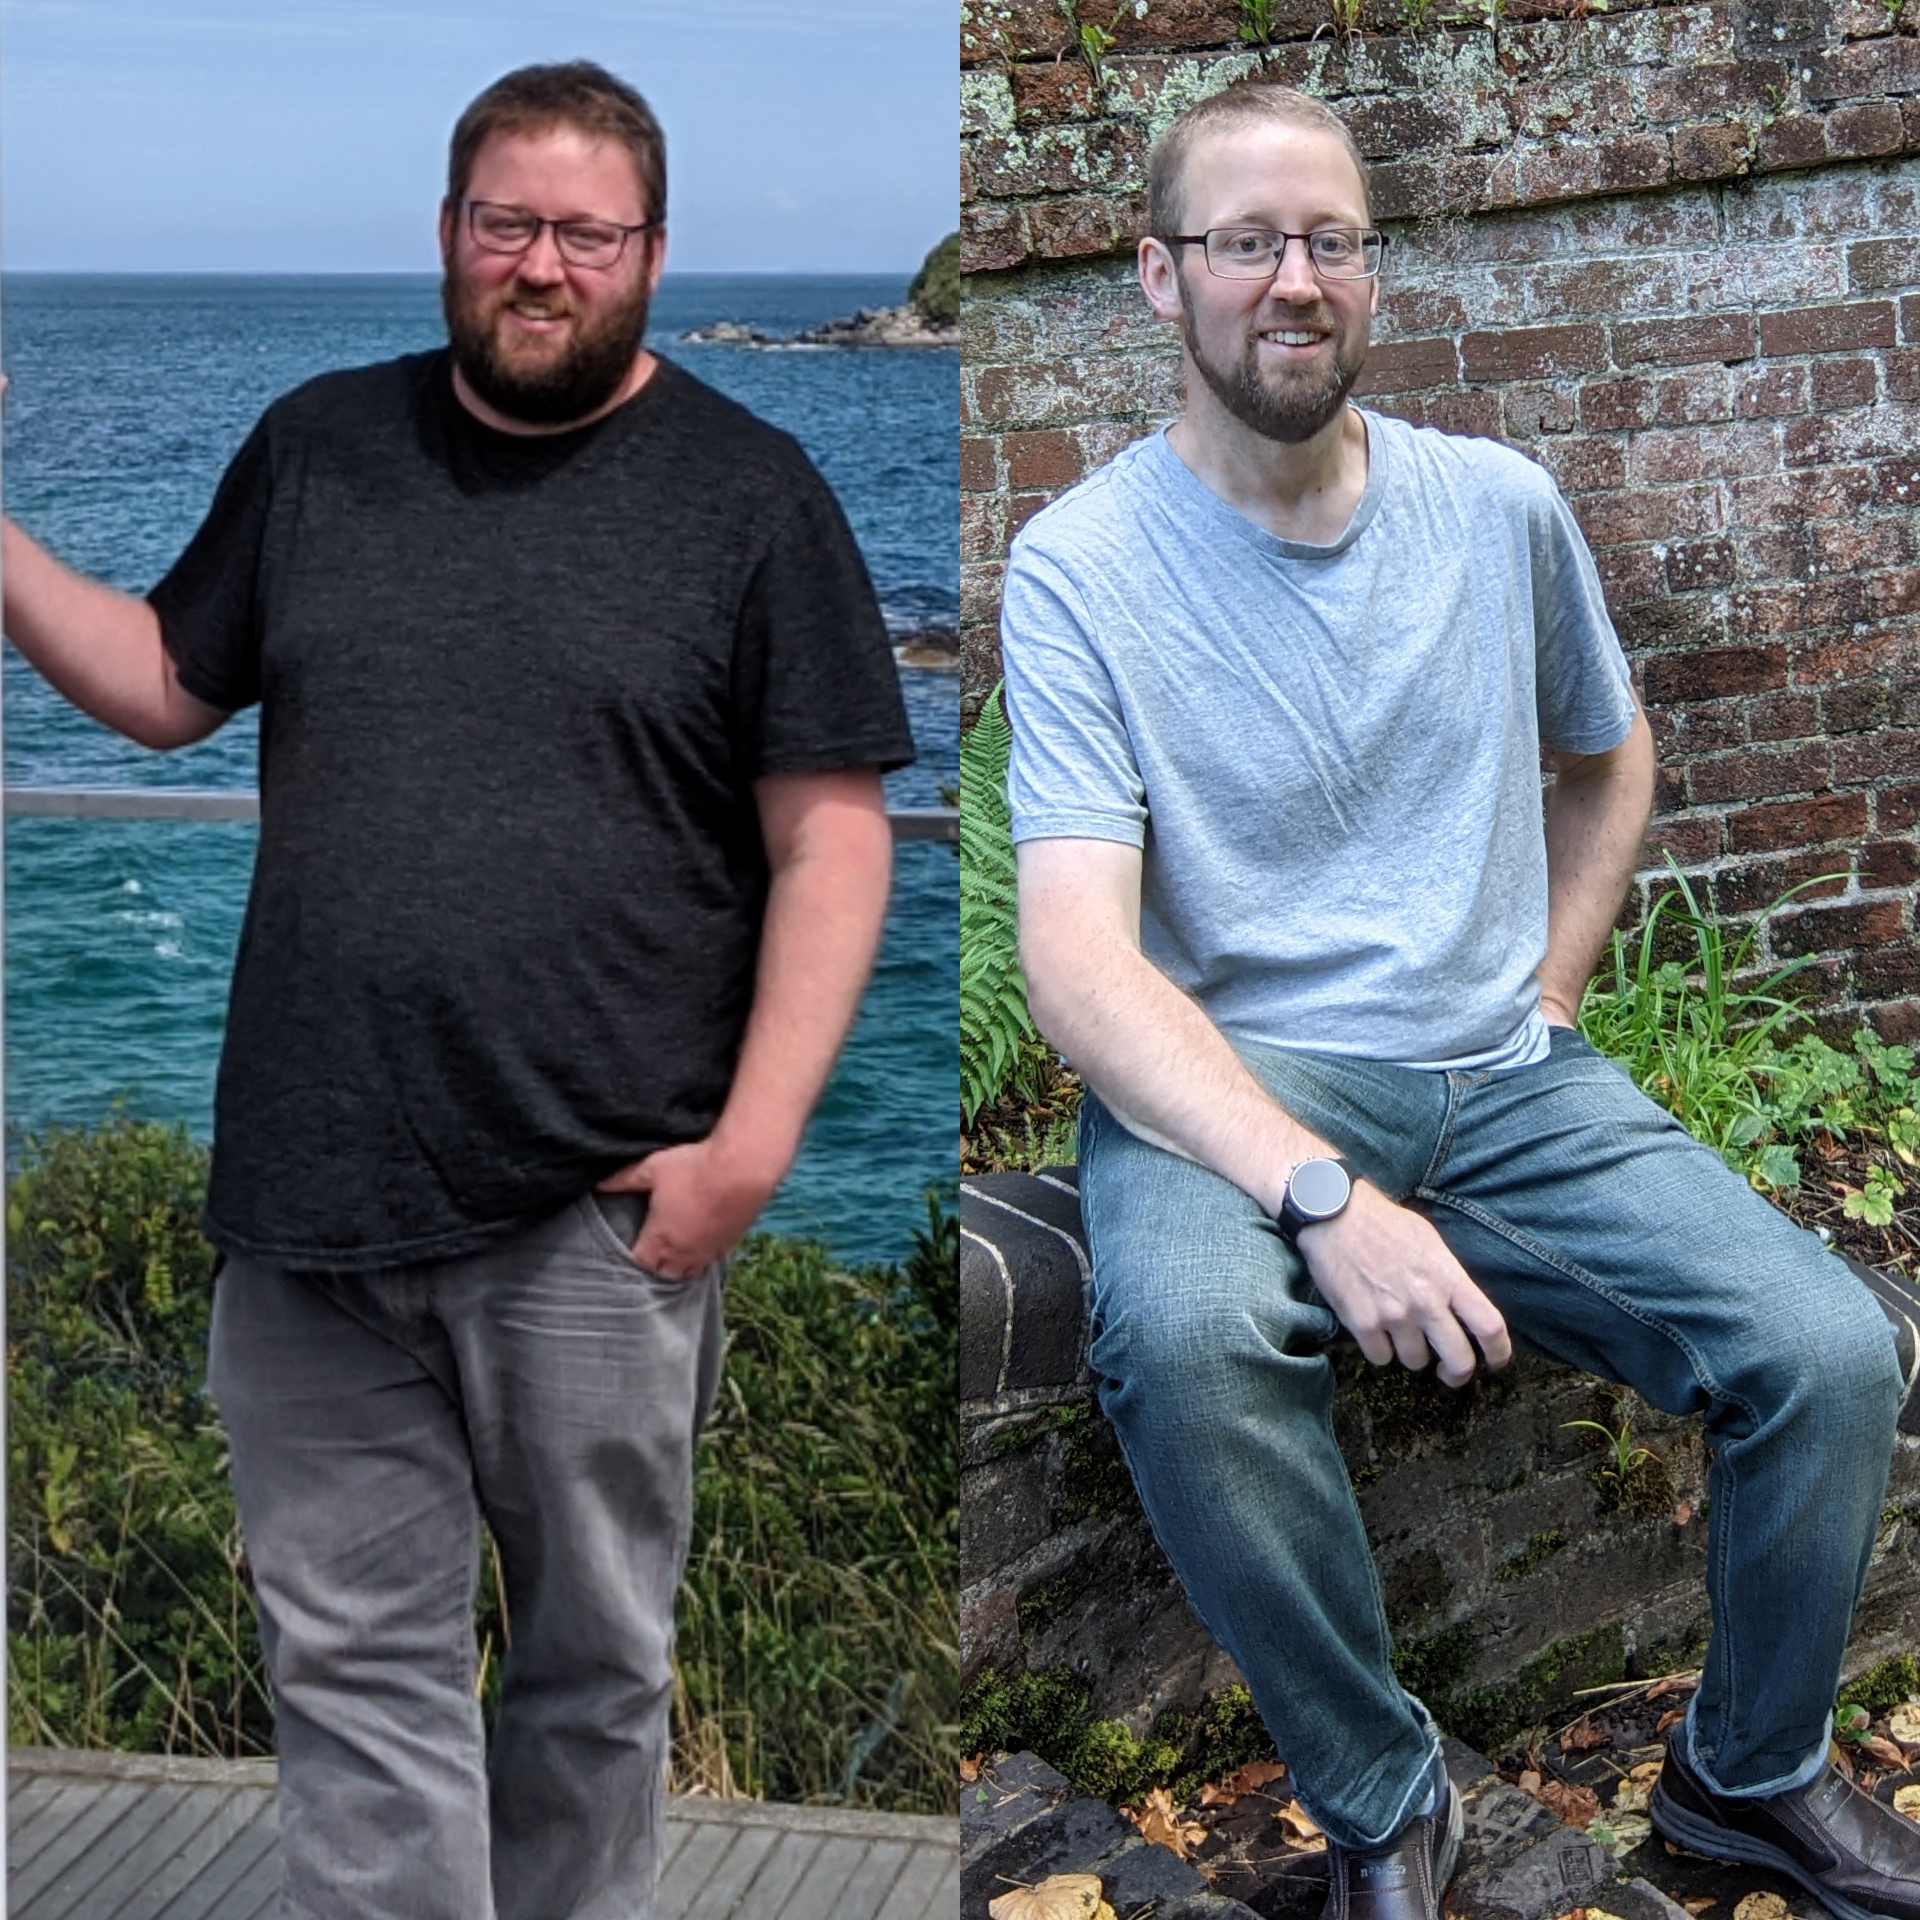 6 foot Male 118 lbs Weight Loss Before and After 305 lbs to 187 lbs